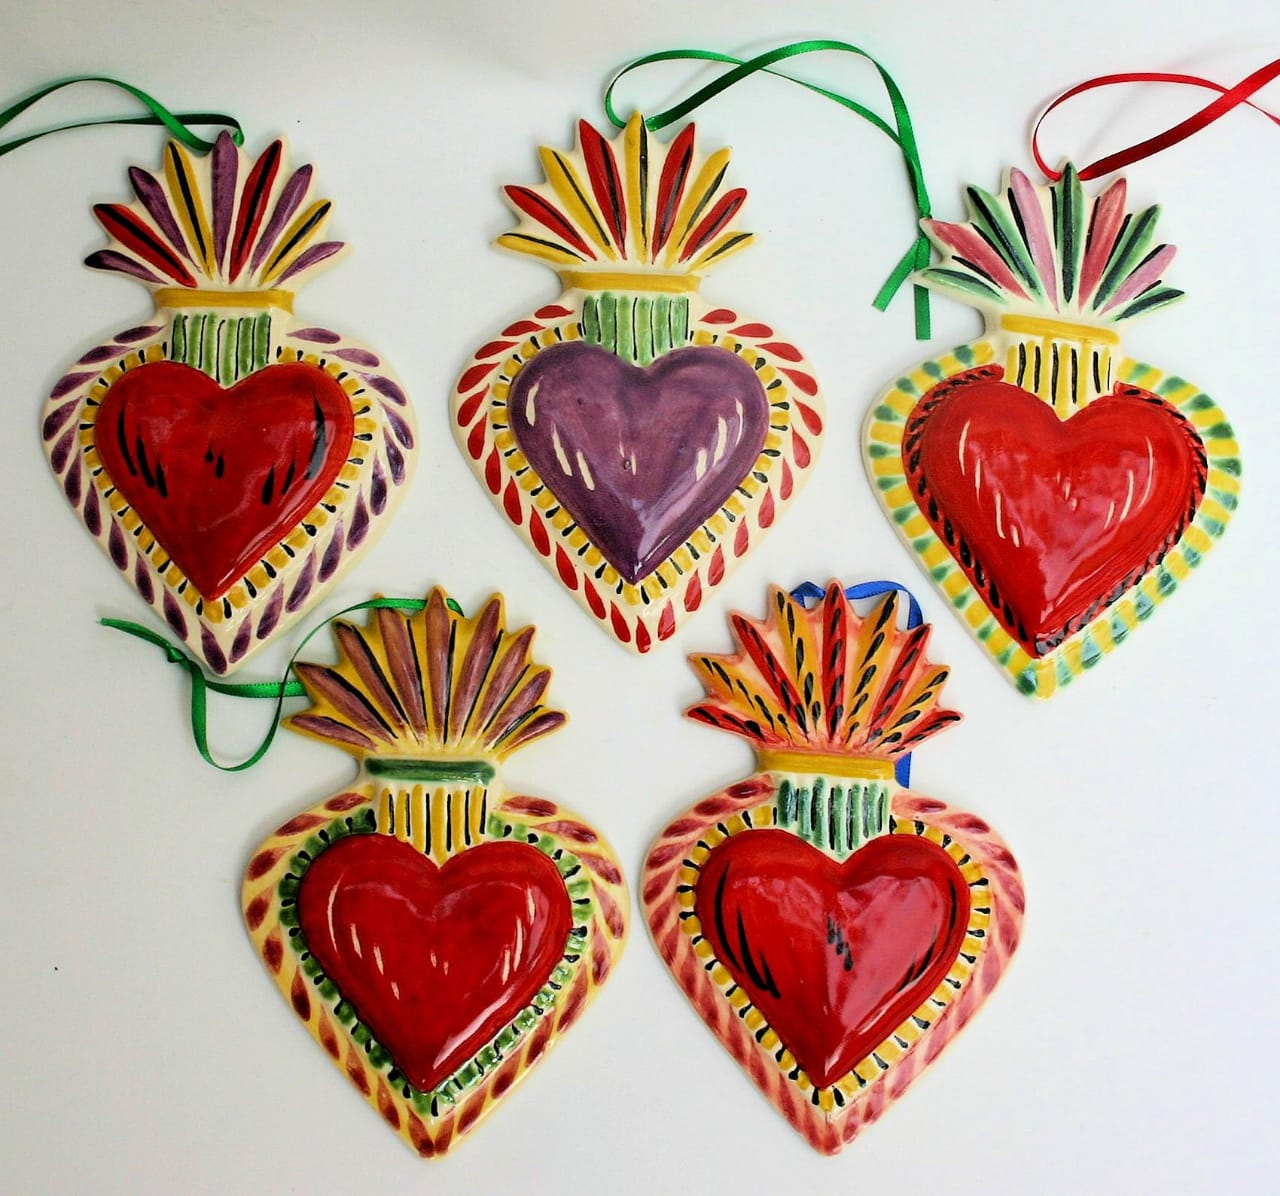 Ornament Sacred Heart Set of 5 in solid colors